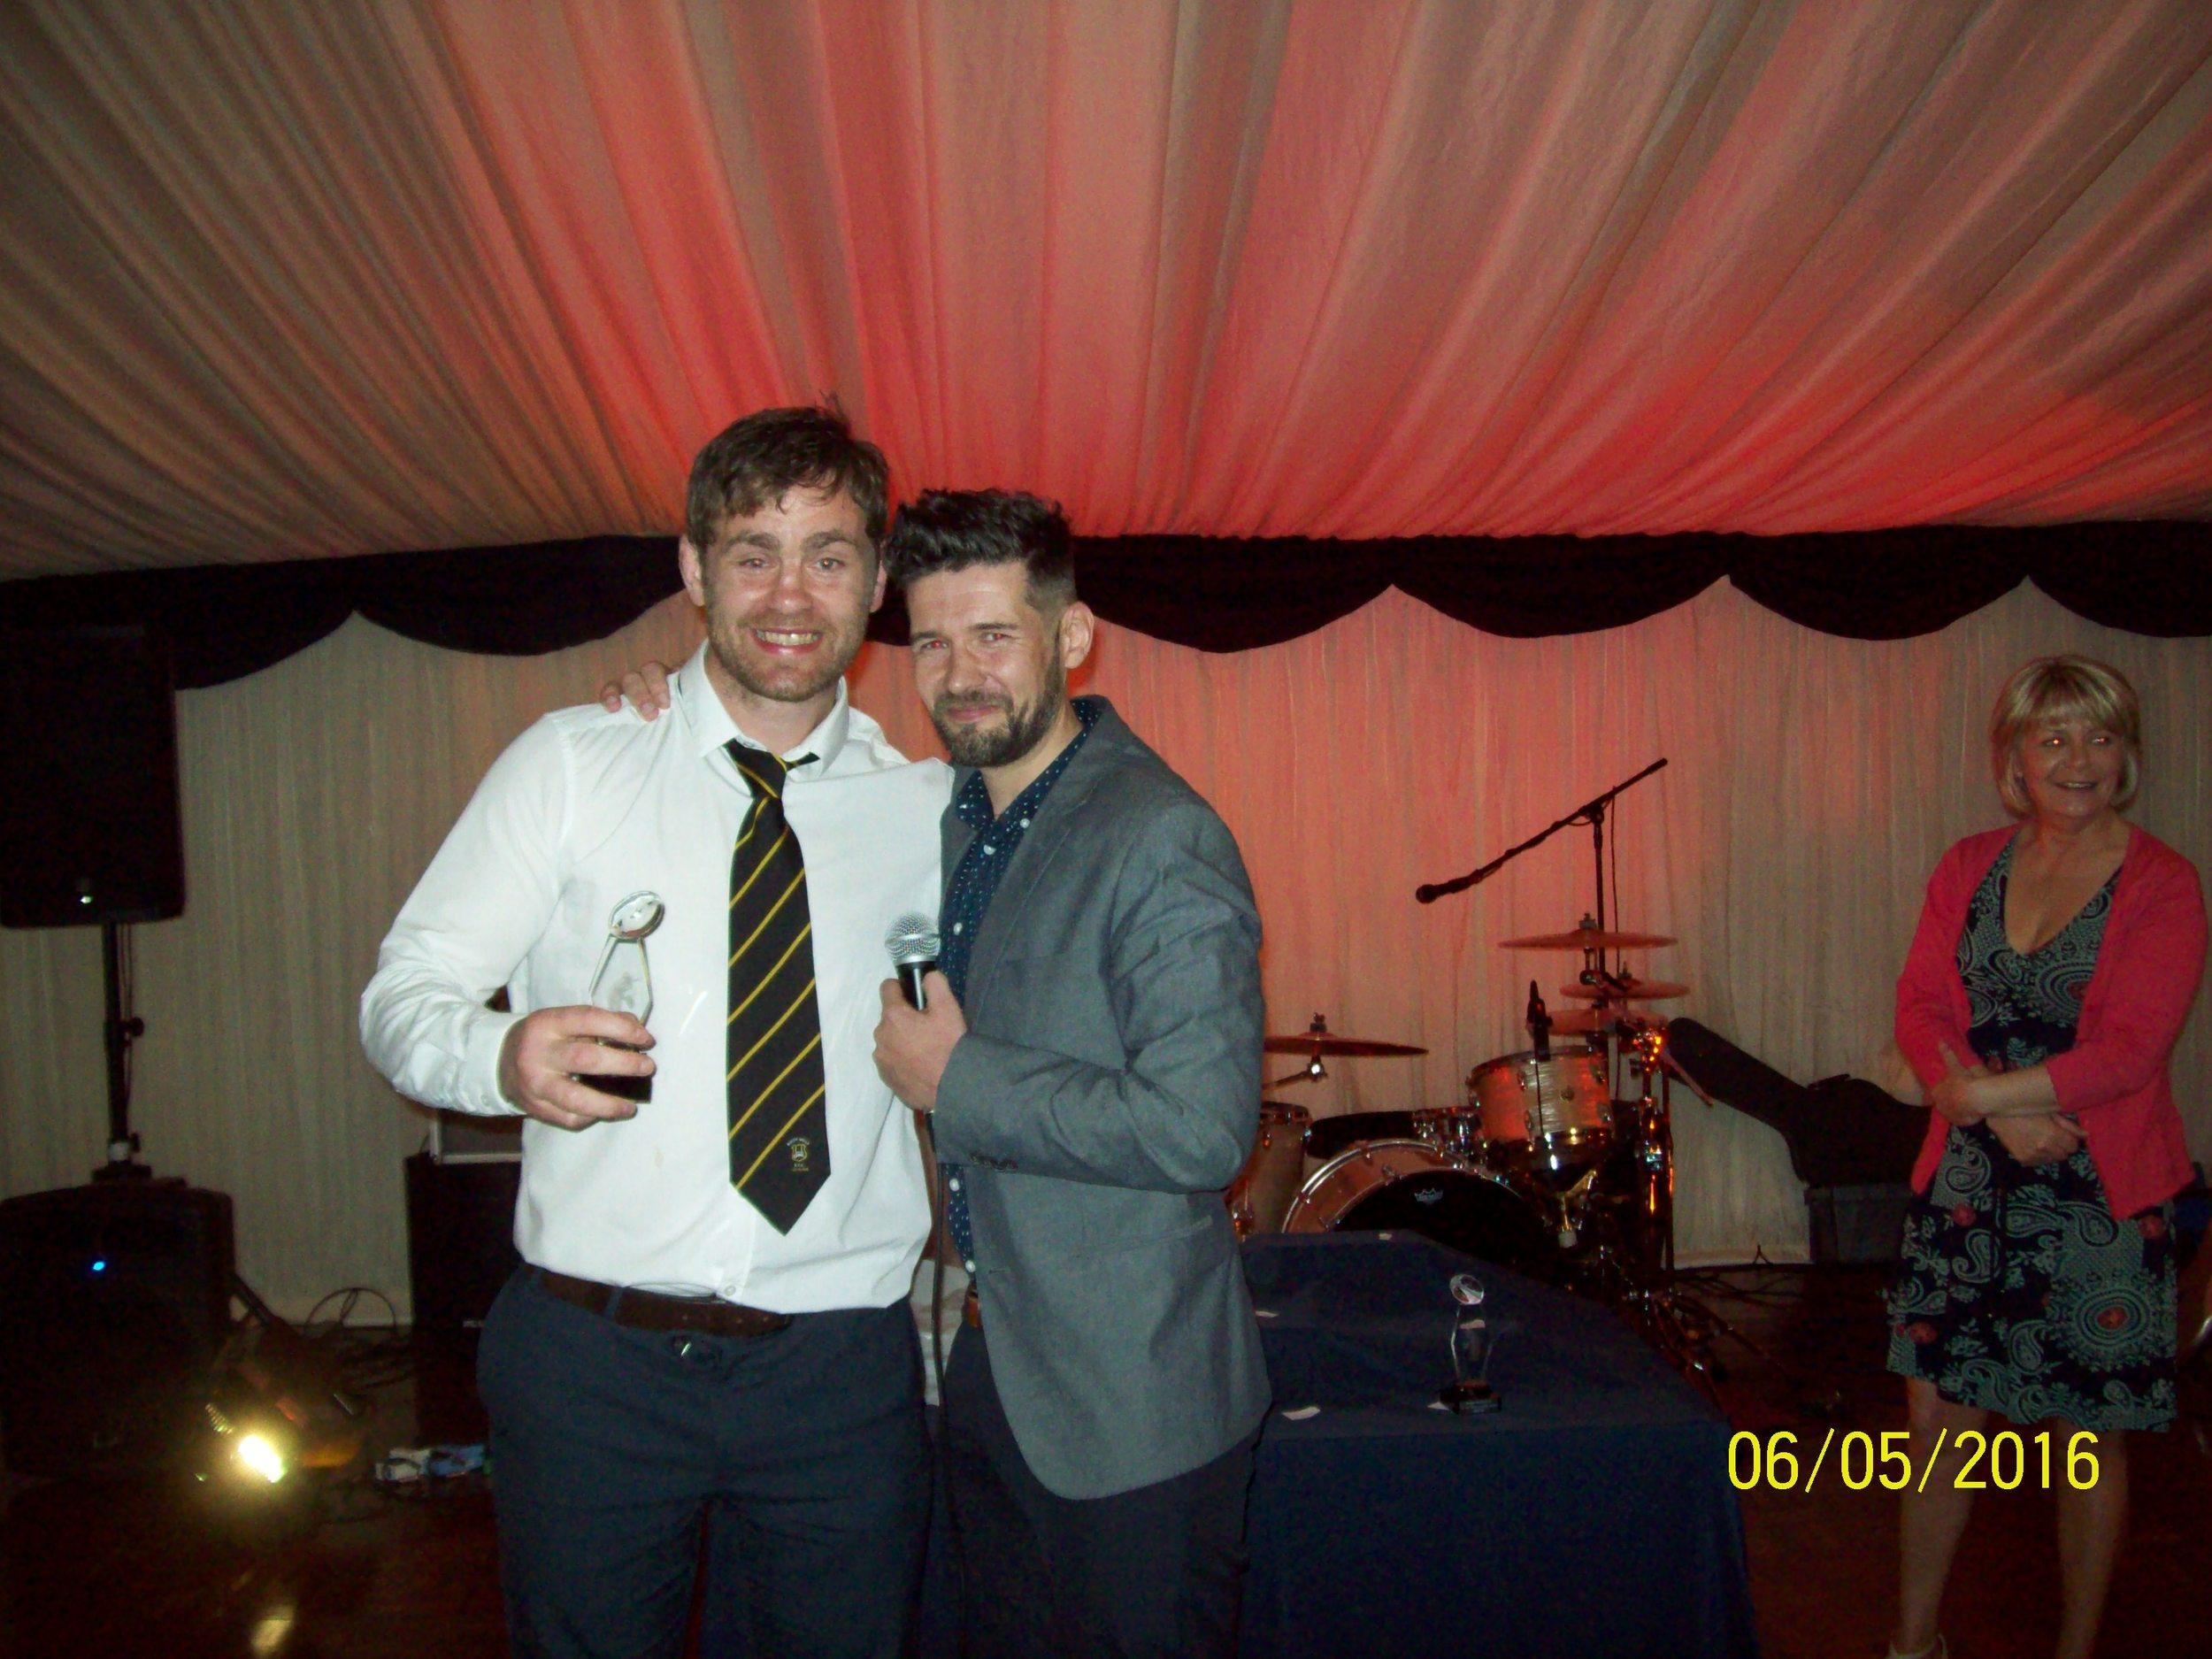 Wayne Morris, Player's Player of the Year. With Nick Howells.